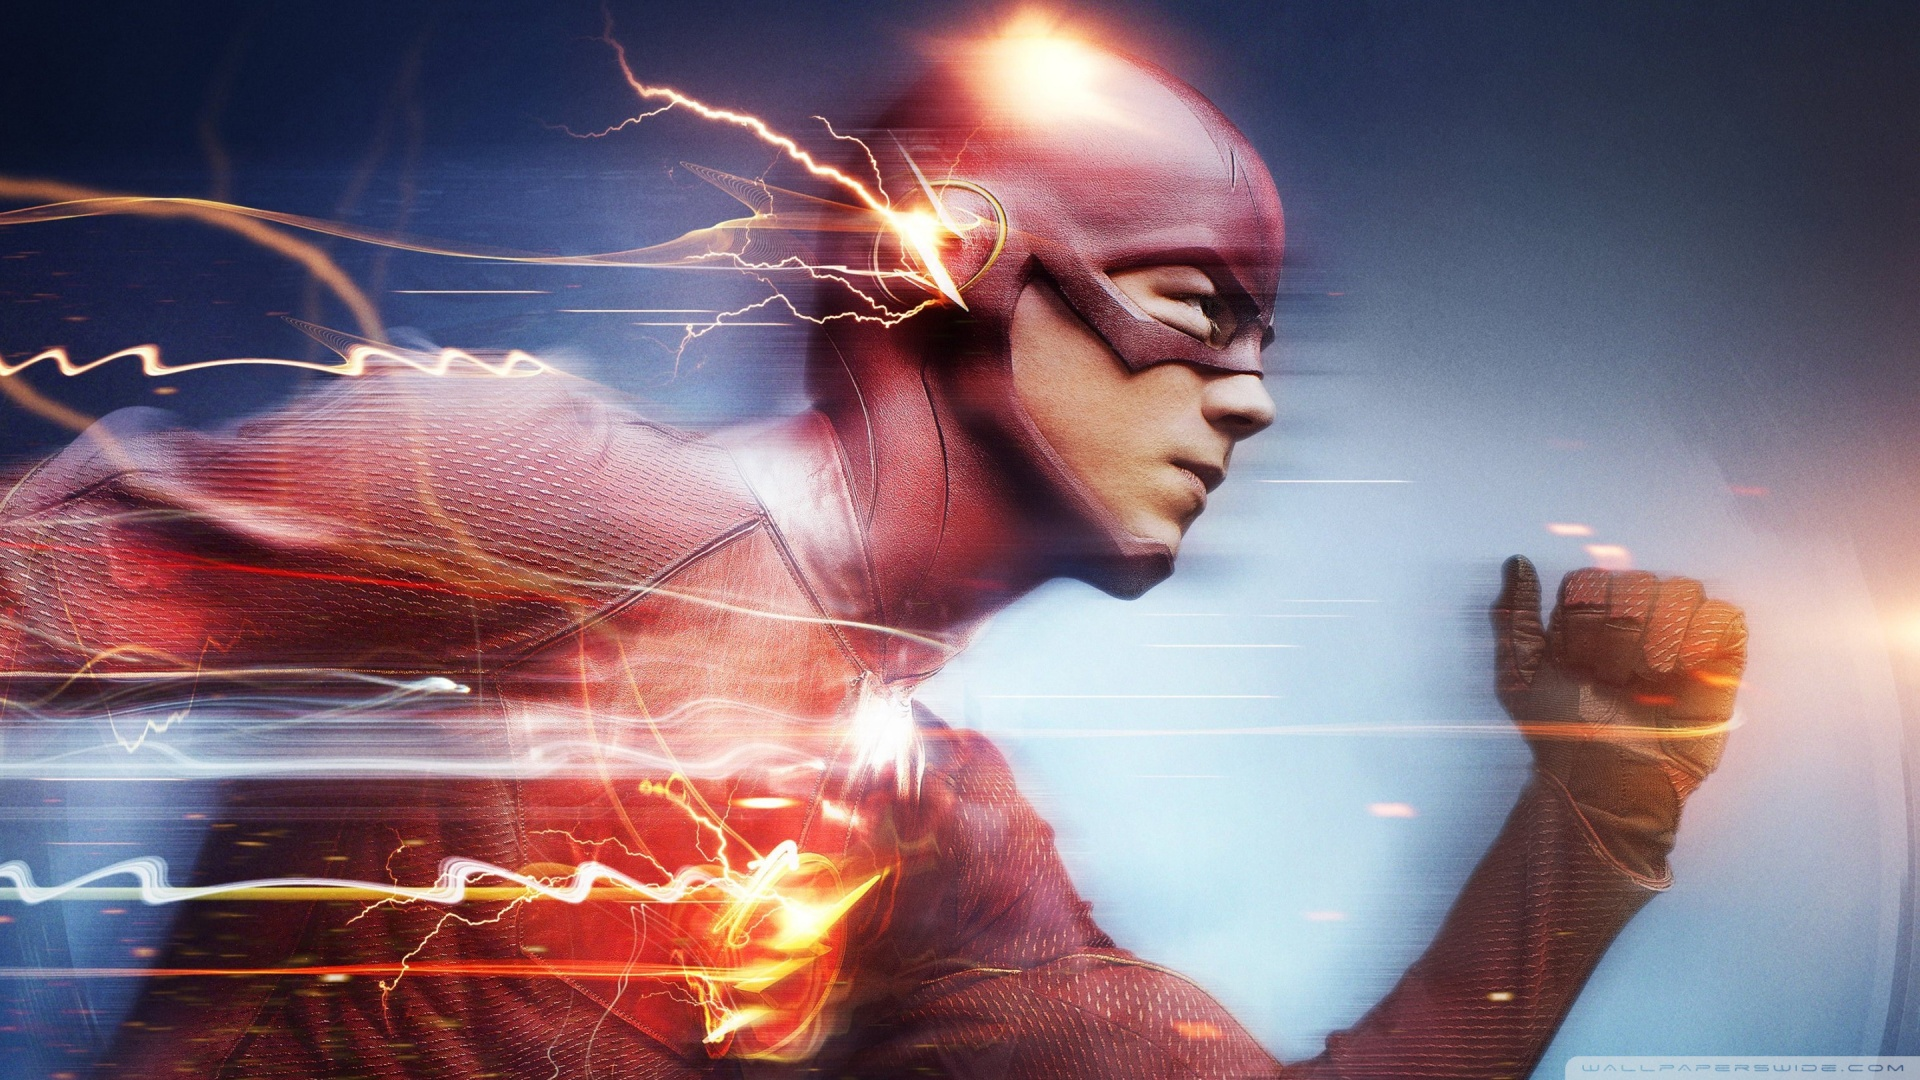 Flash-Superhero-Running-HD-1920x1080-Need-iPhone-S-Plus-Background-for-wallpaper-wp3605610